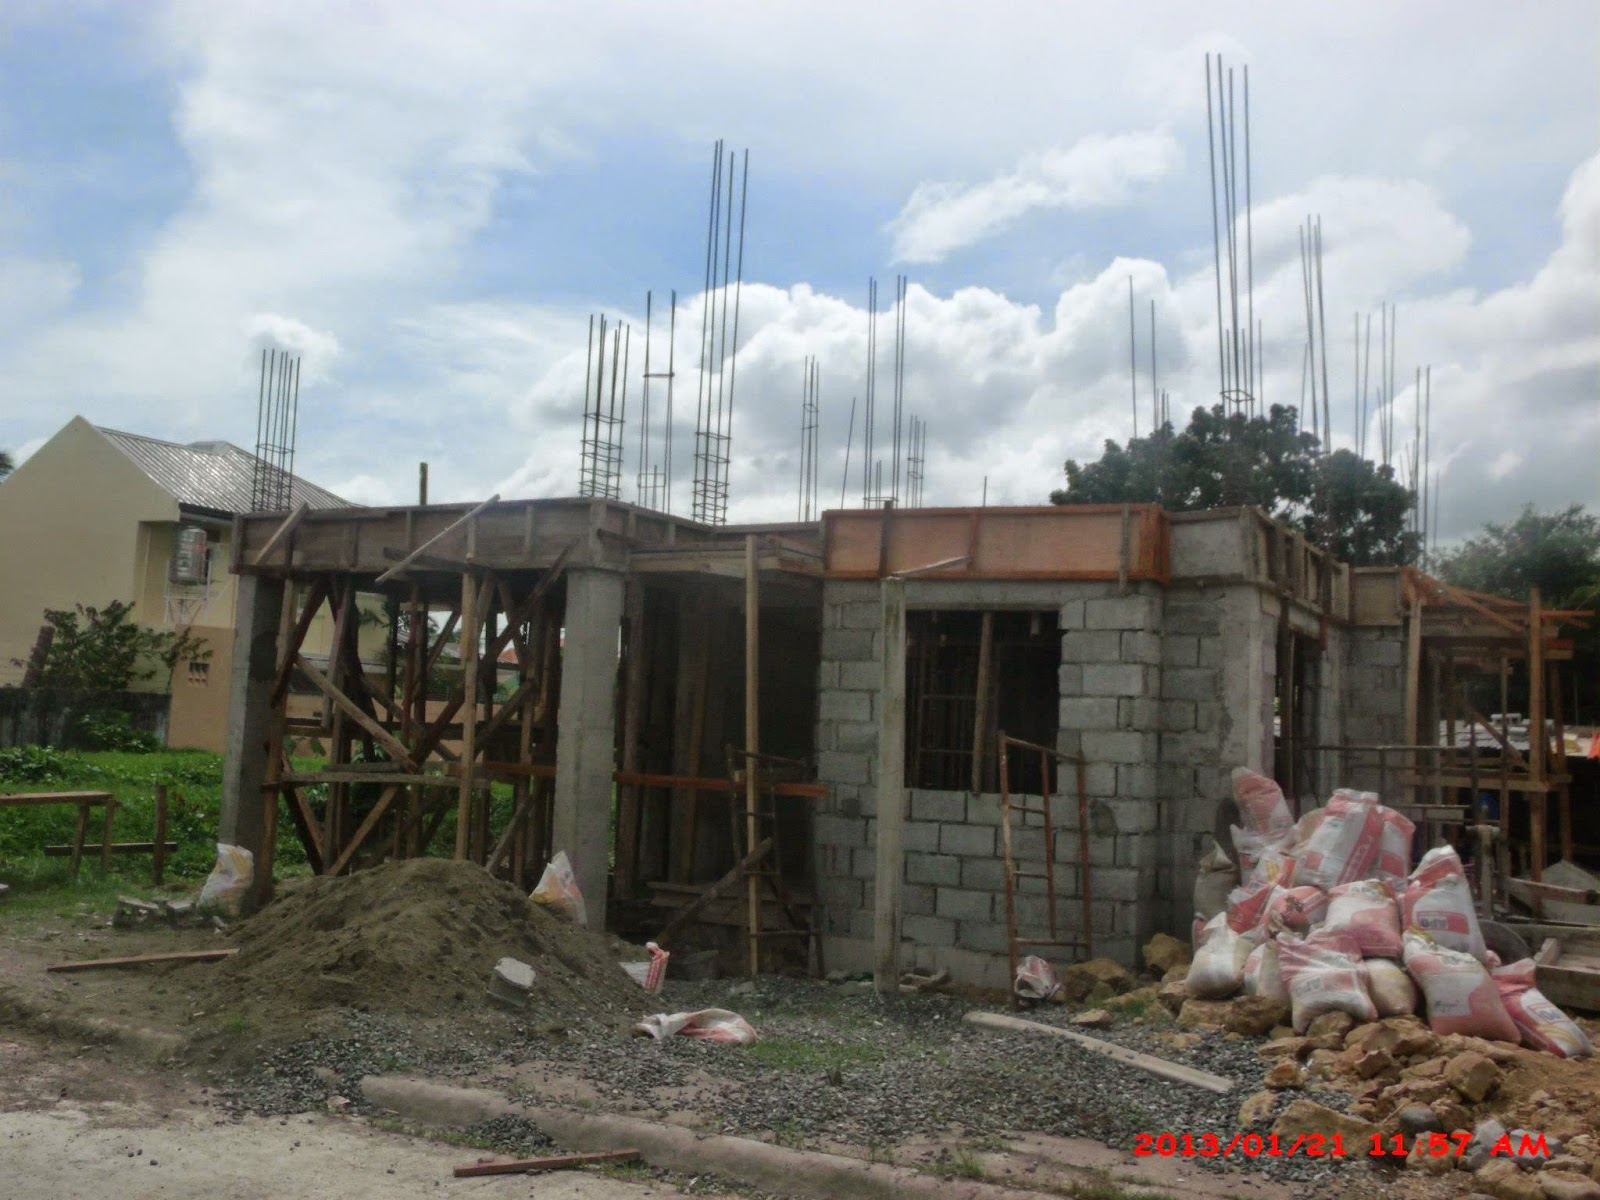 Two storey 2 bedroom home fitting in an 80 square meter 8 meters x - Two Storey Home Designs Iloilo Three Bedroom House Plans With Garage Iloilo House Model Designs Iloilo